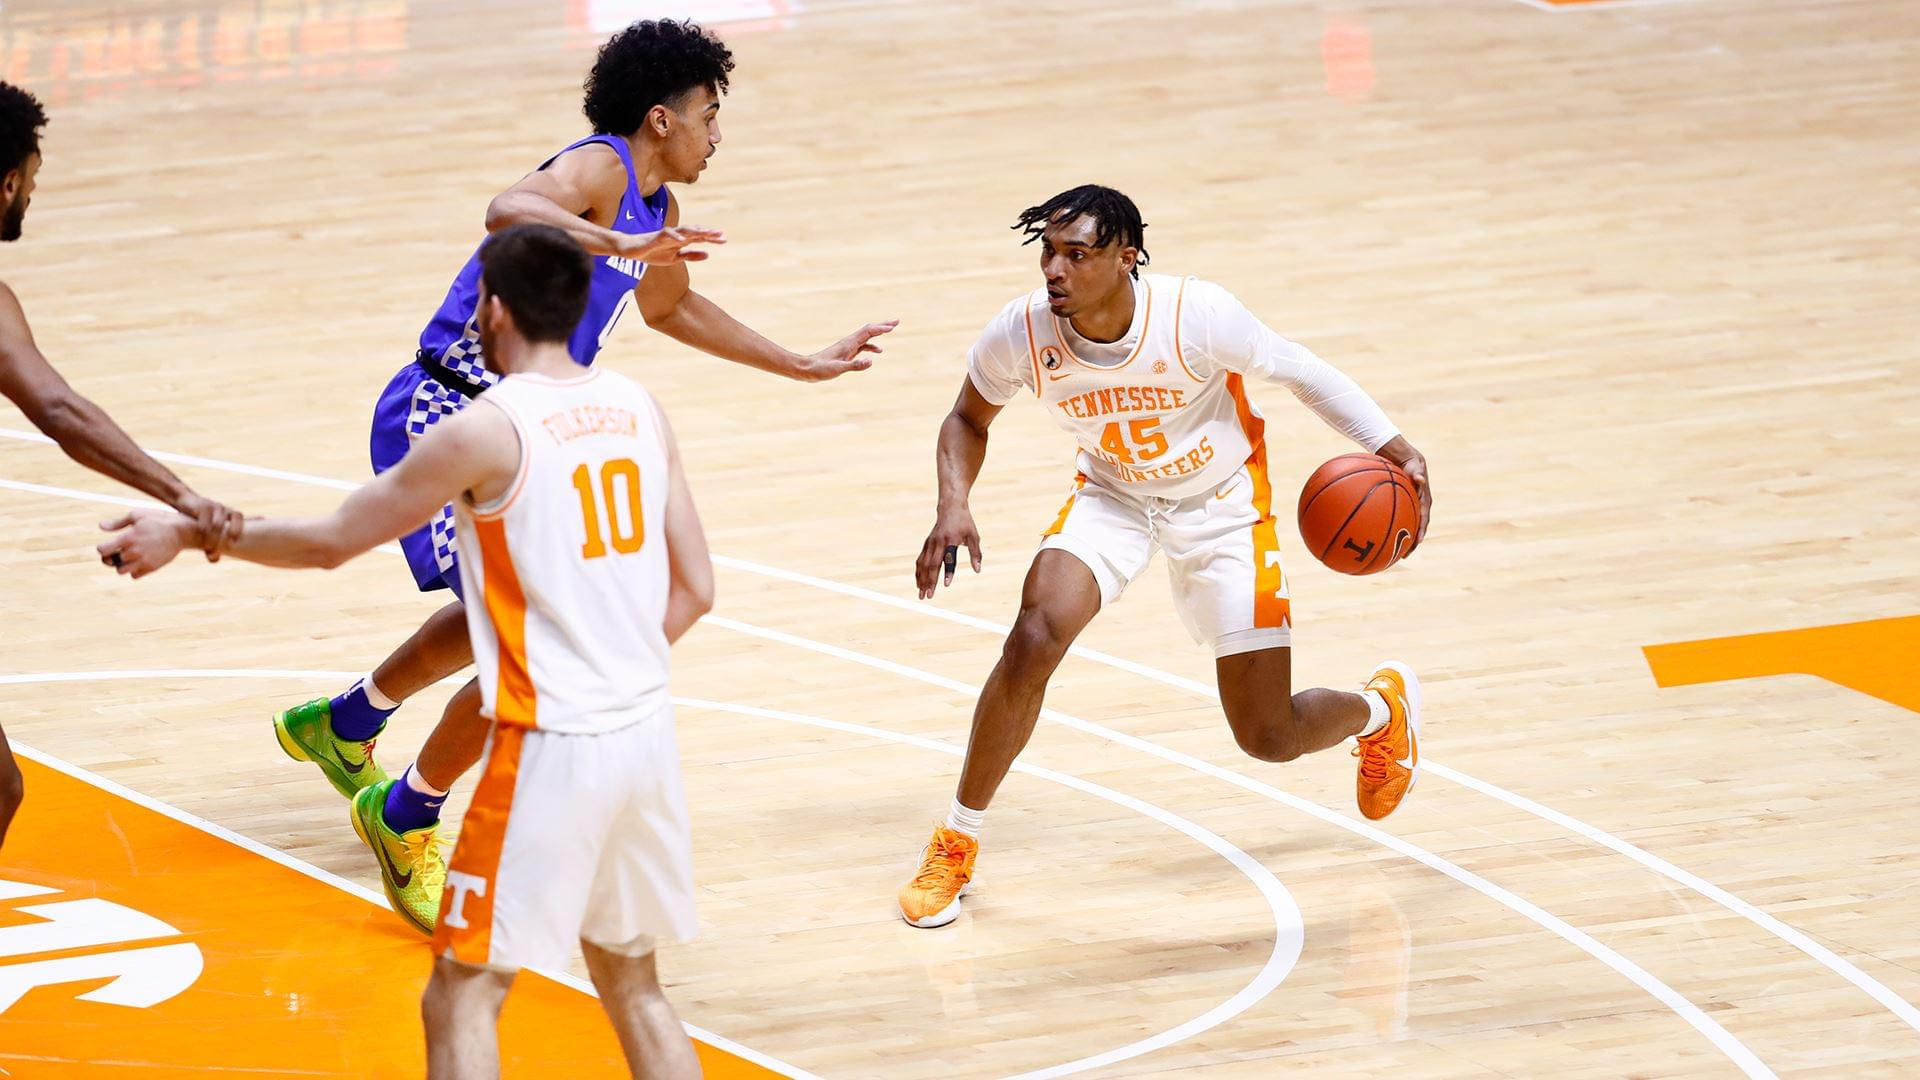 Vols Fall at Home to Kentucky, 70-55